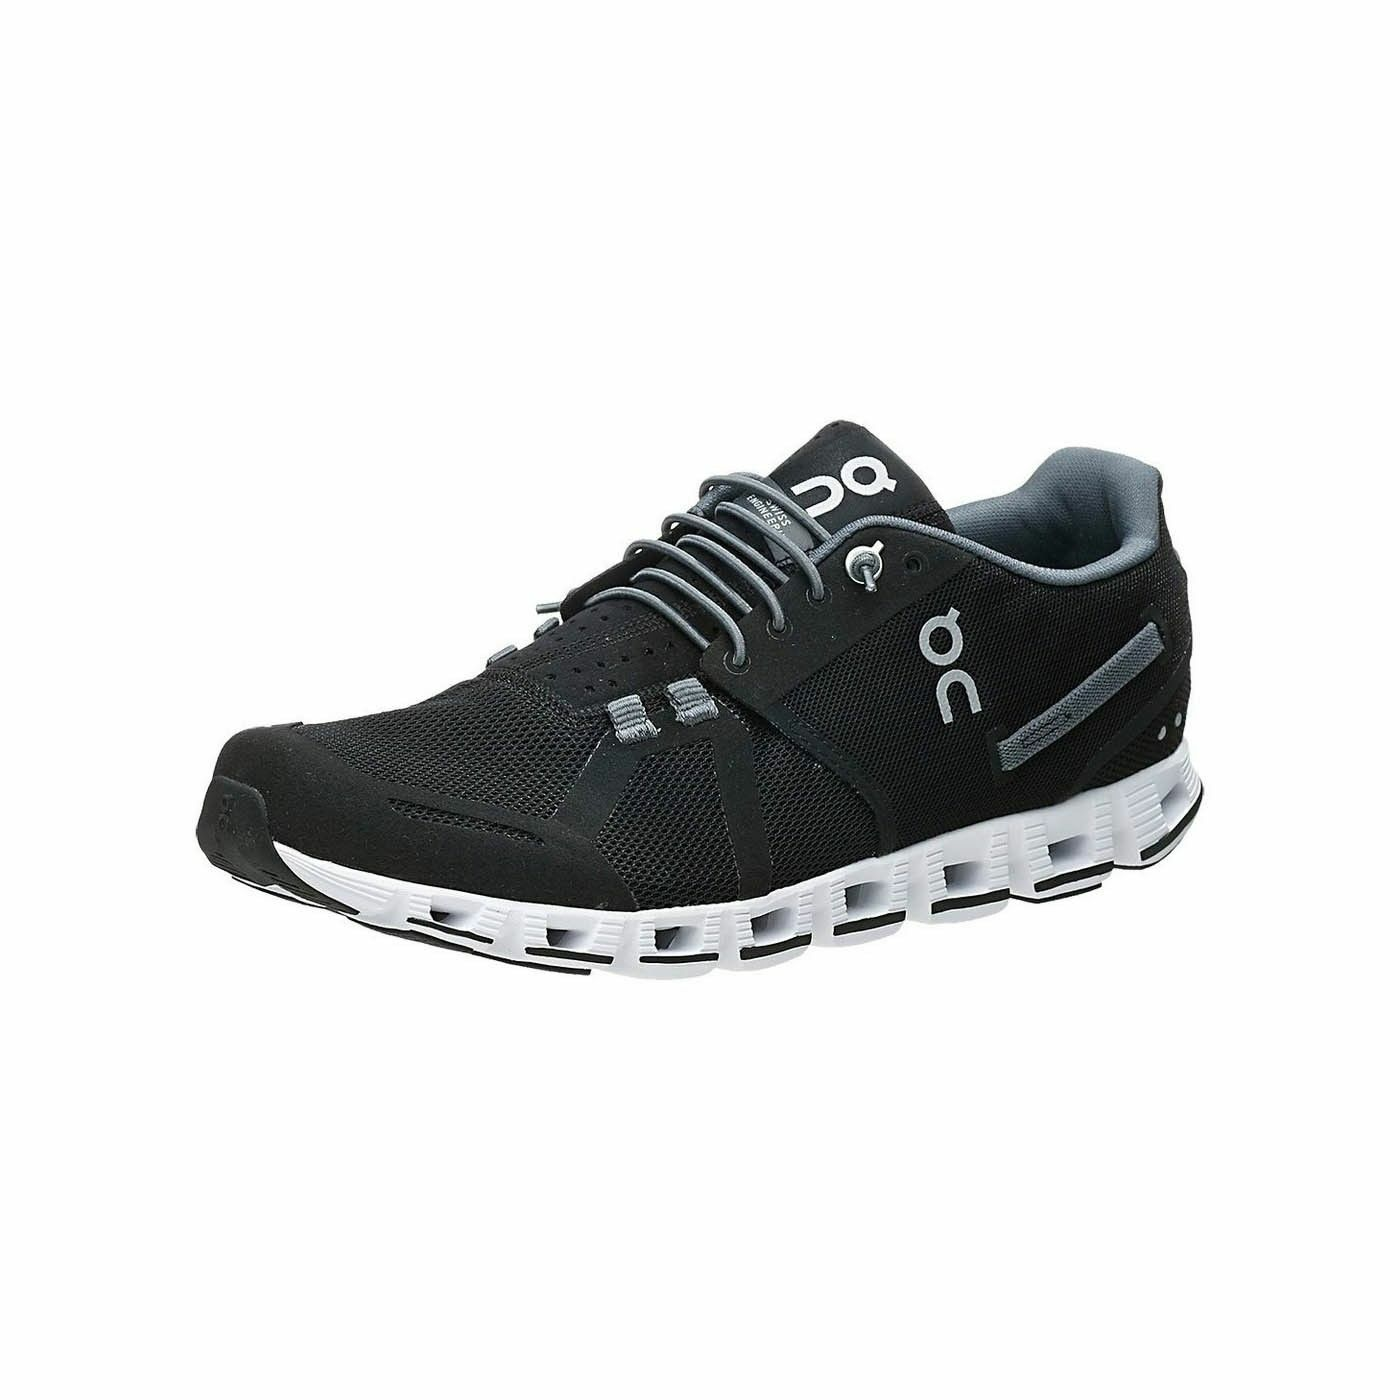 On-Running Cloud Sneakers Black / White Men's Shoes Size 8